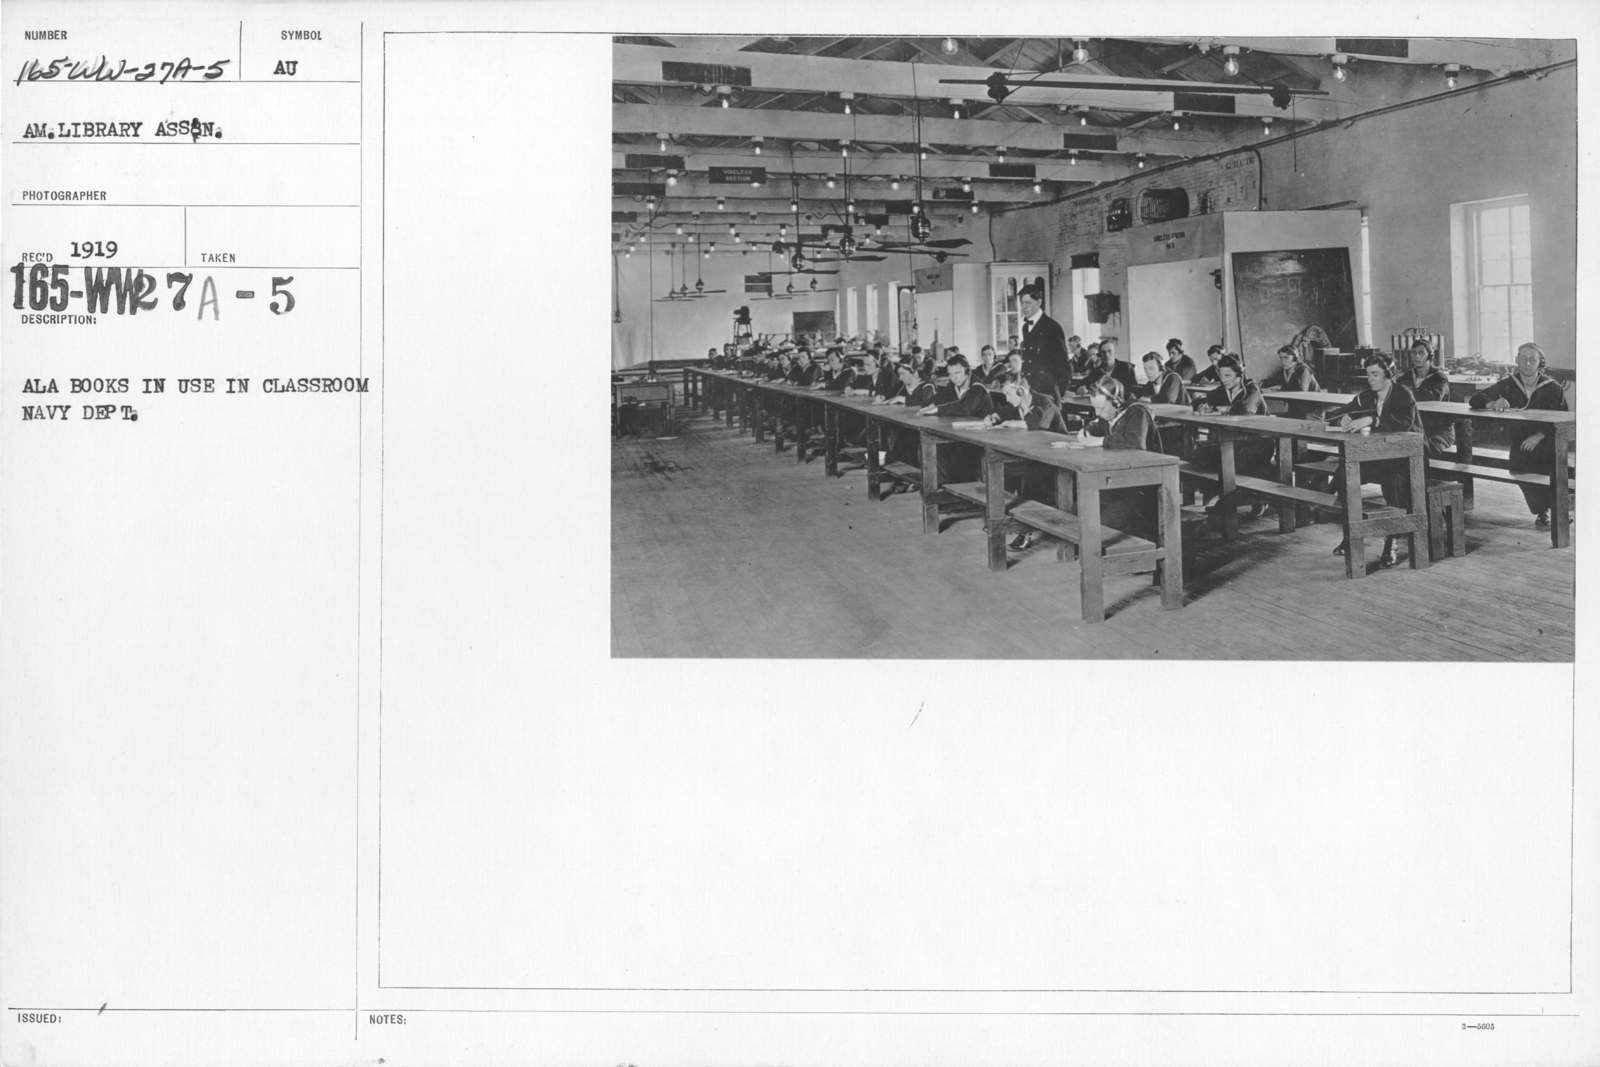 American Library Association Instruction Books - A.L.A. books in use in classroom, Navy Dept